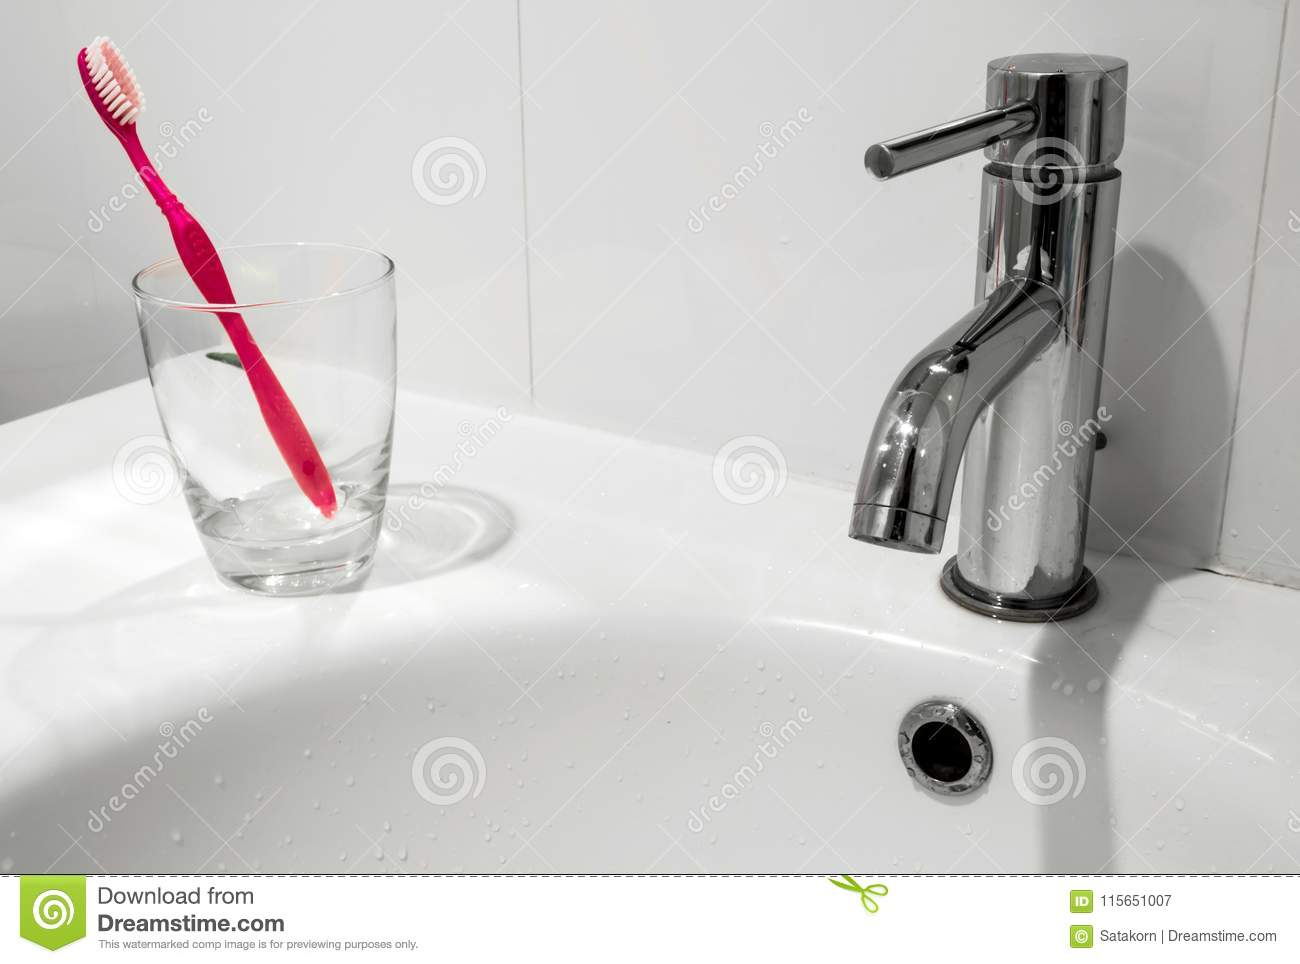 Bathroom Faucet And Wash Basin With Water Glass And Toothbrush Stock ...